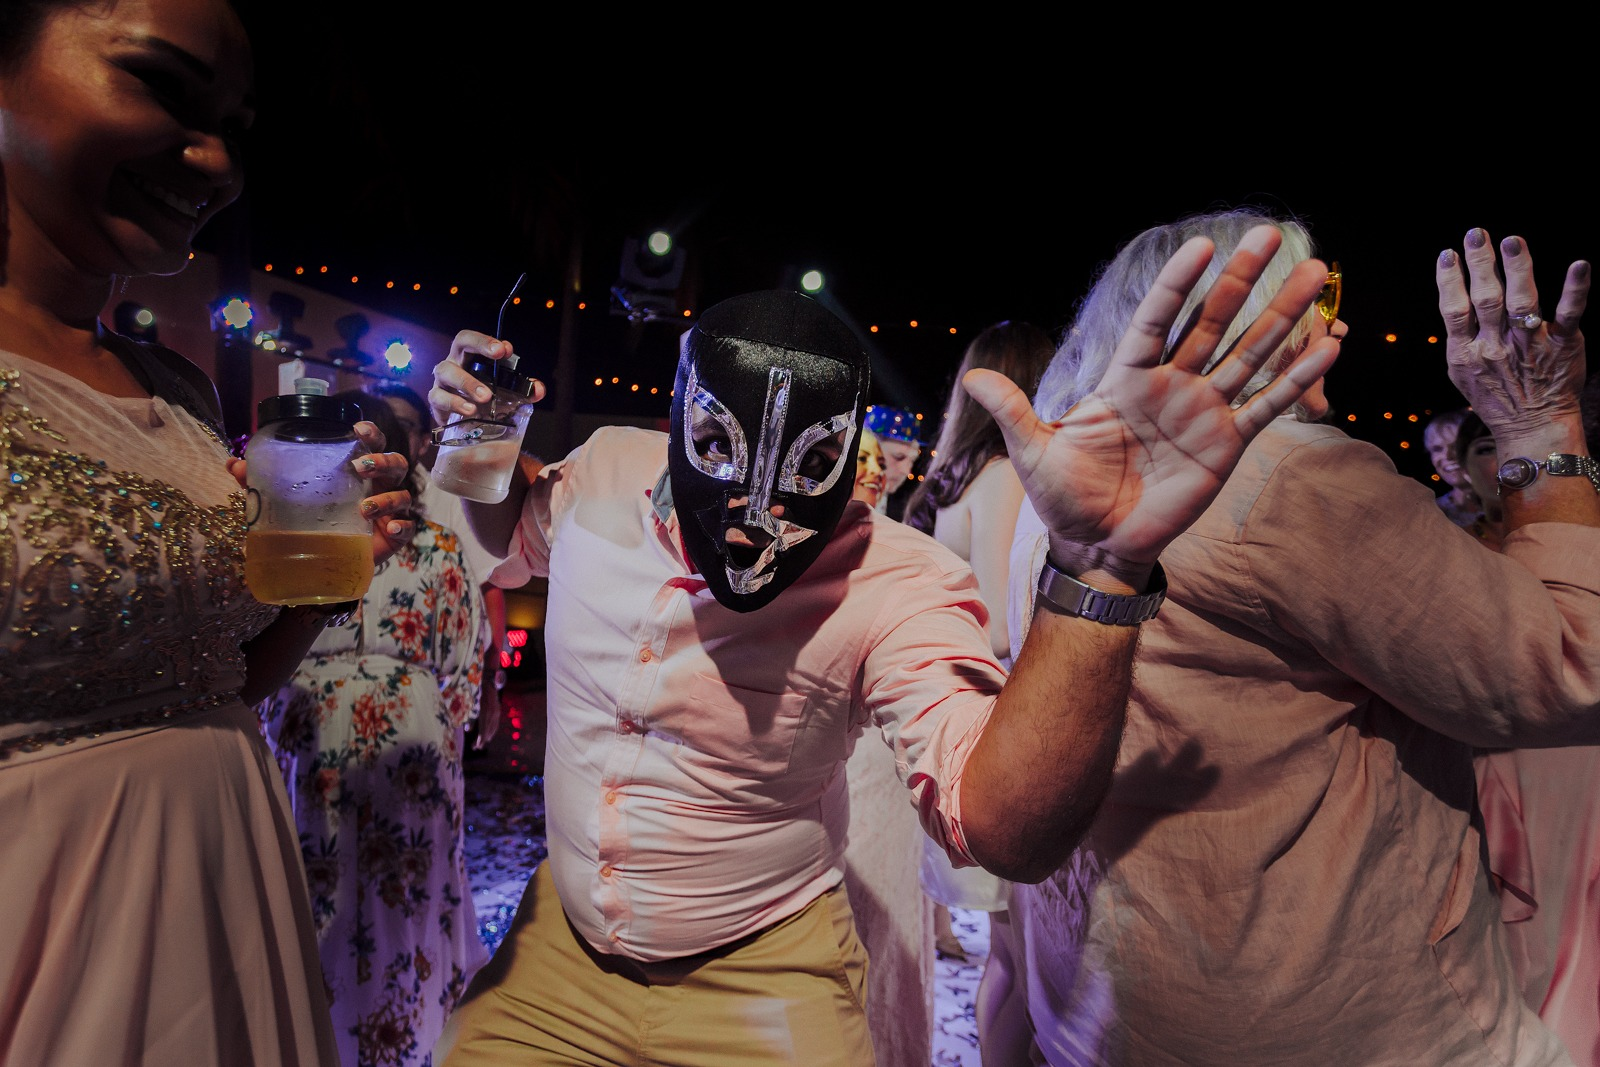 wedding-party-mexico-luchador-mask-dance-drink-fun-